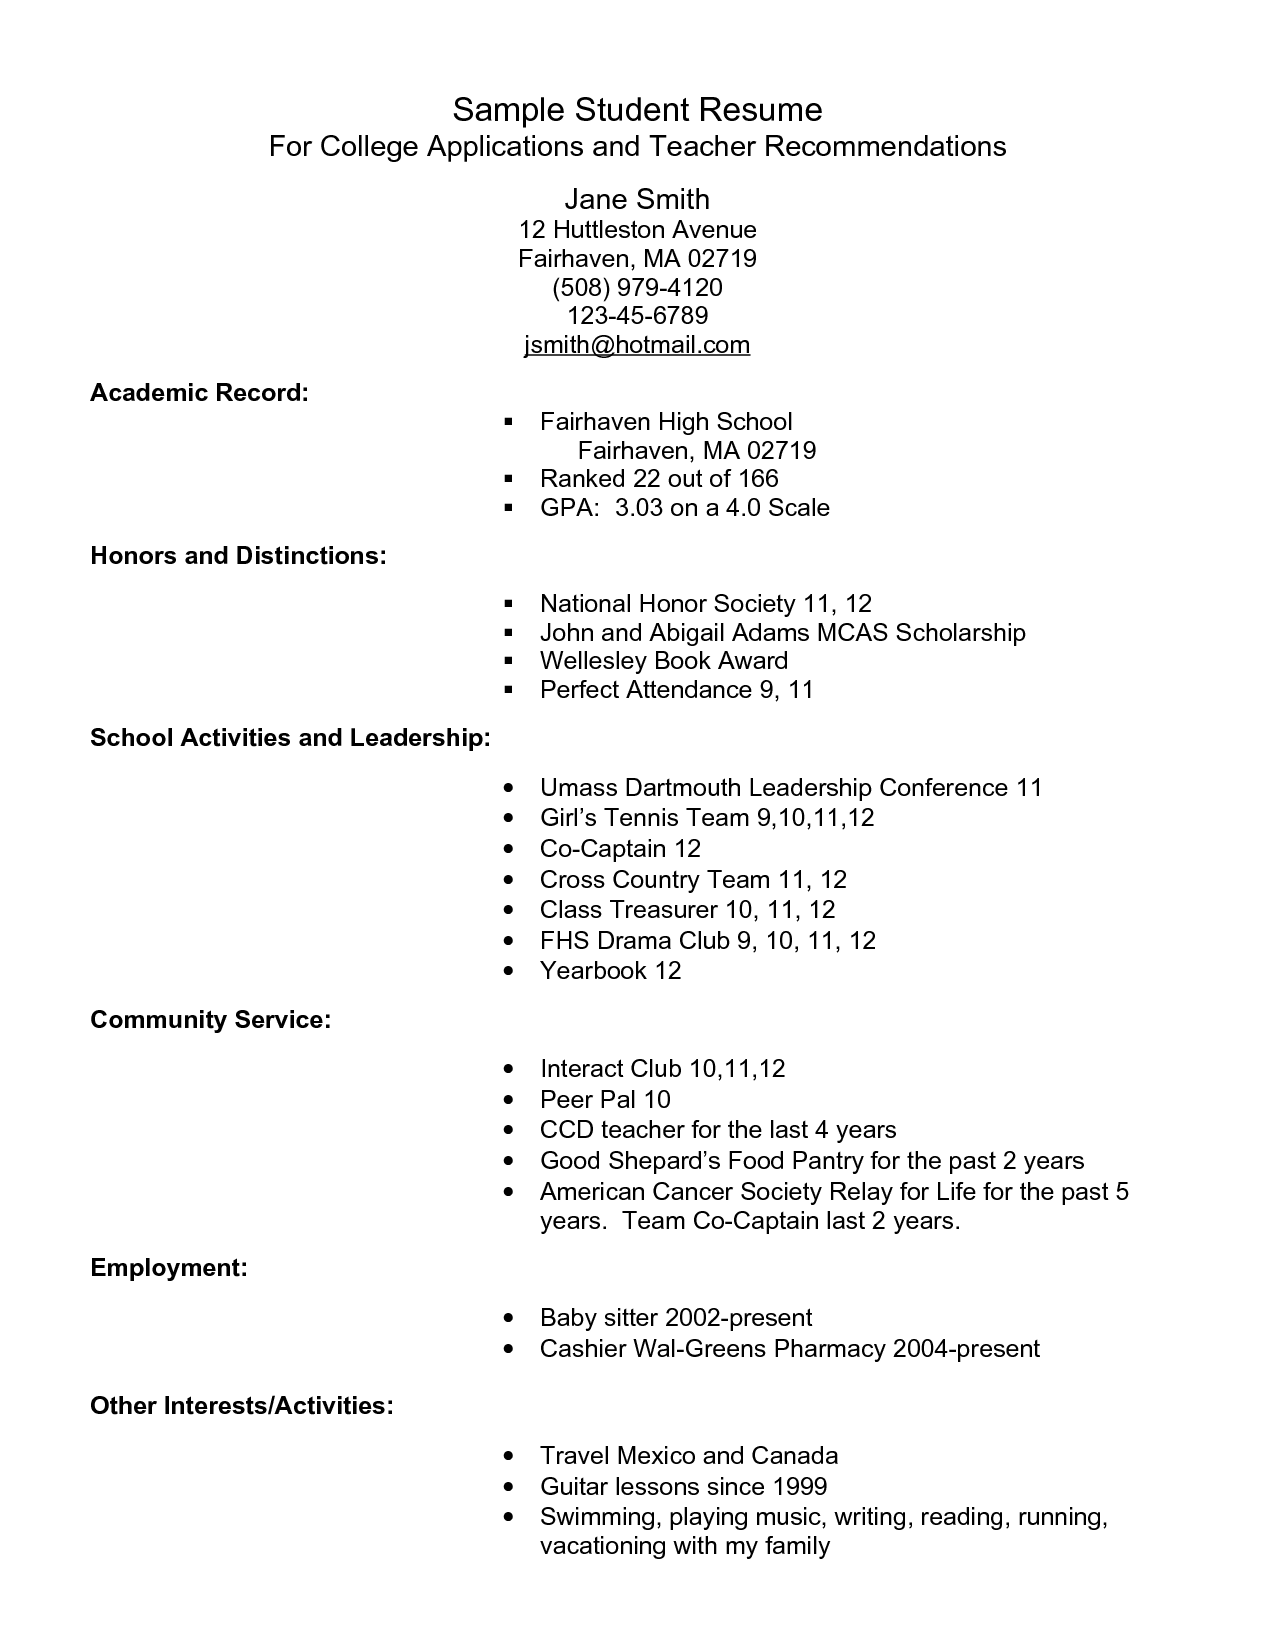 Example Resume For High School Students For College Applications Sample  Student Resume   PDF By Smapdi59